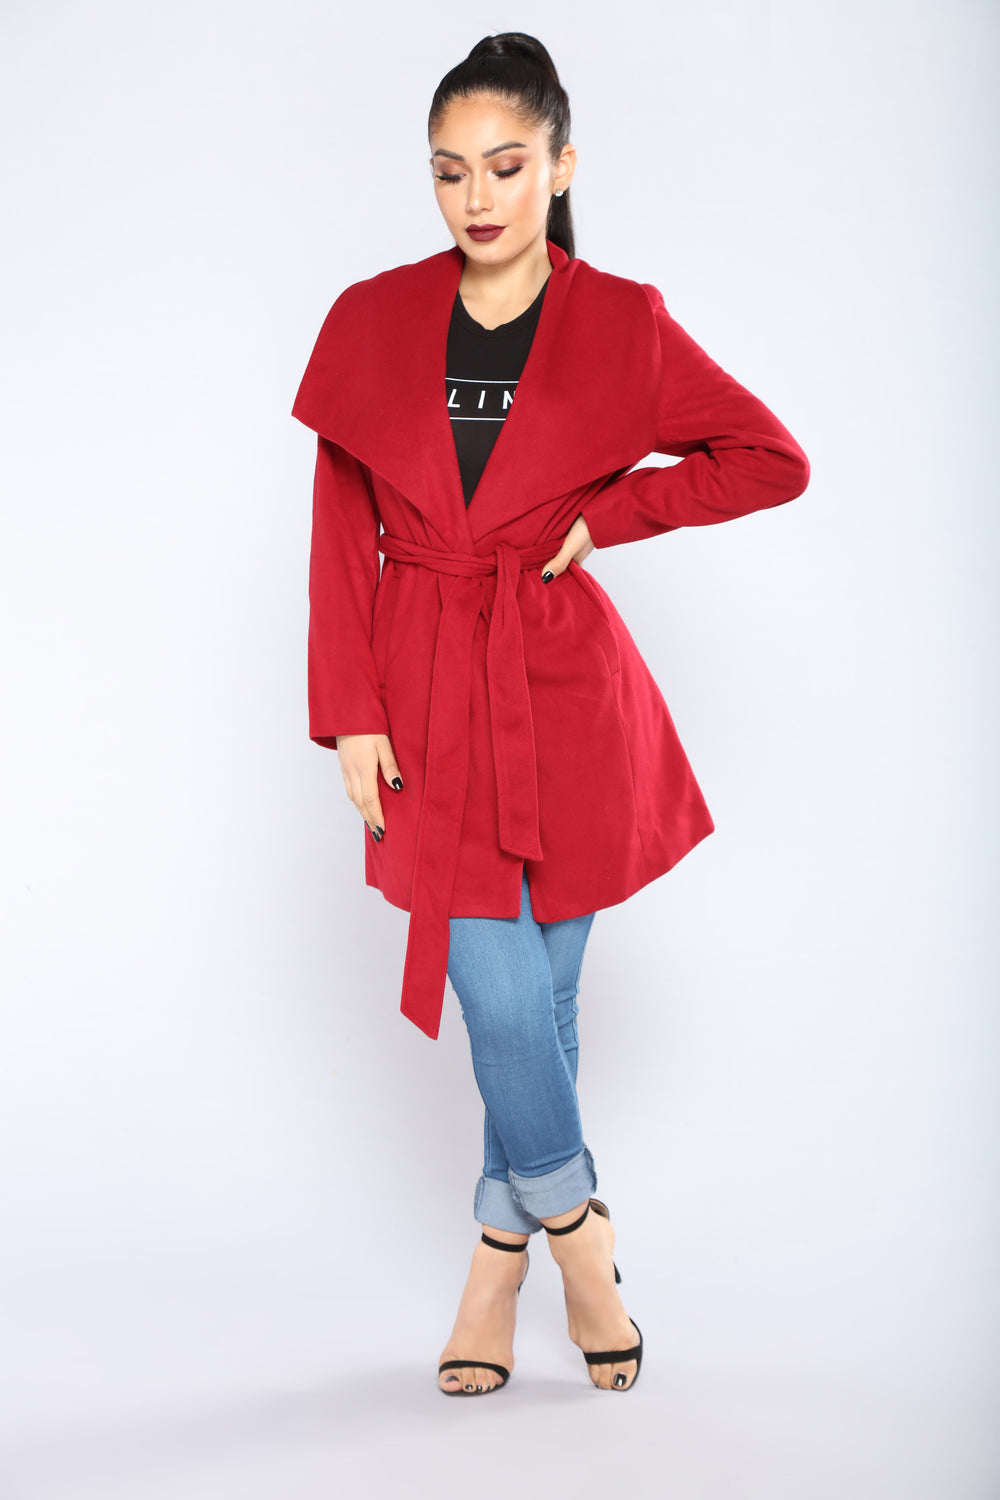 City Girl Vibes Coat - Wine